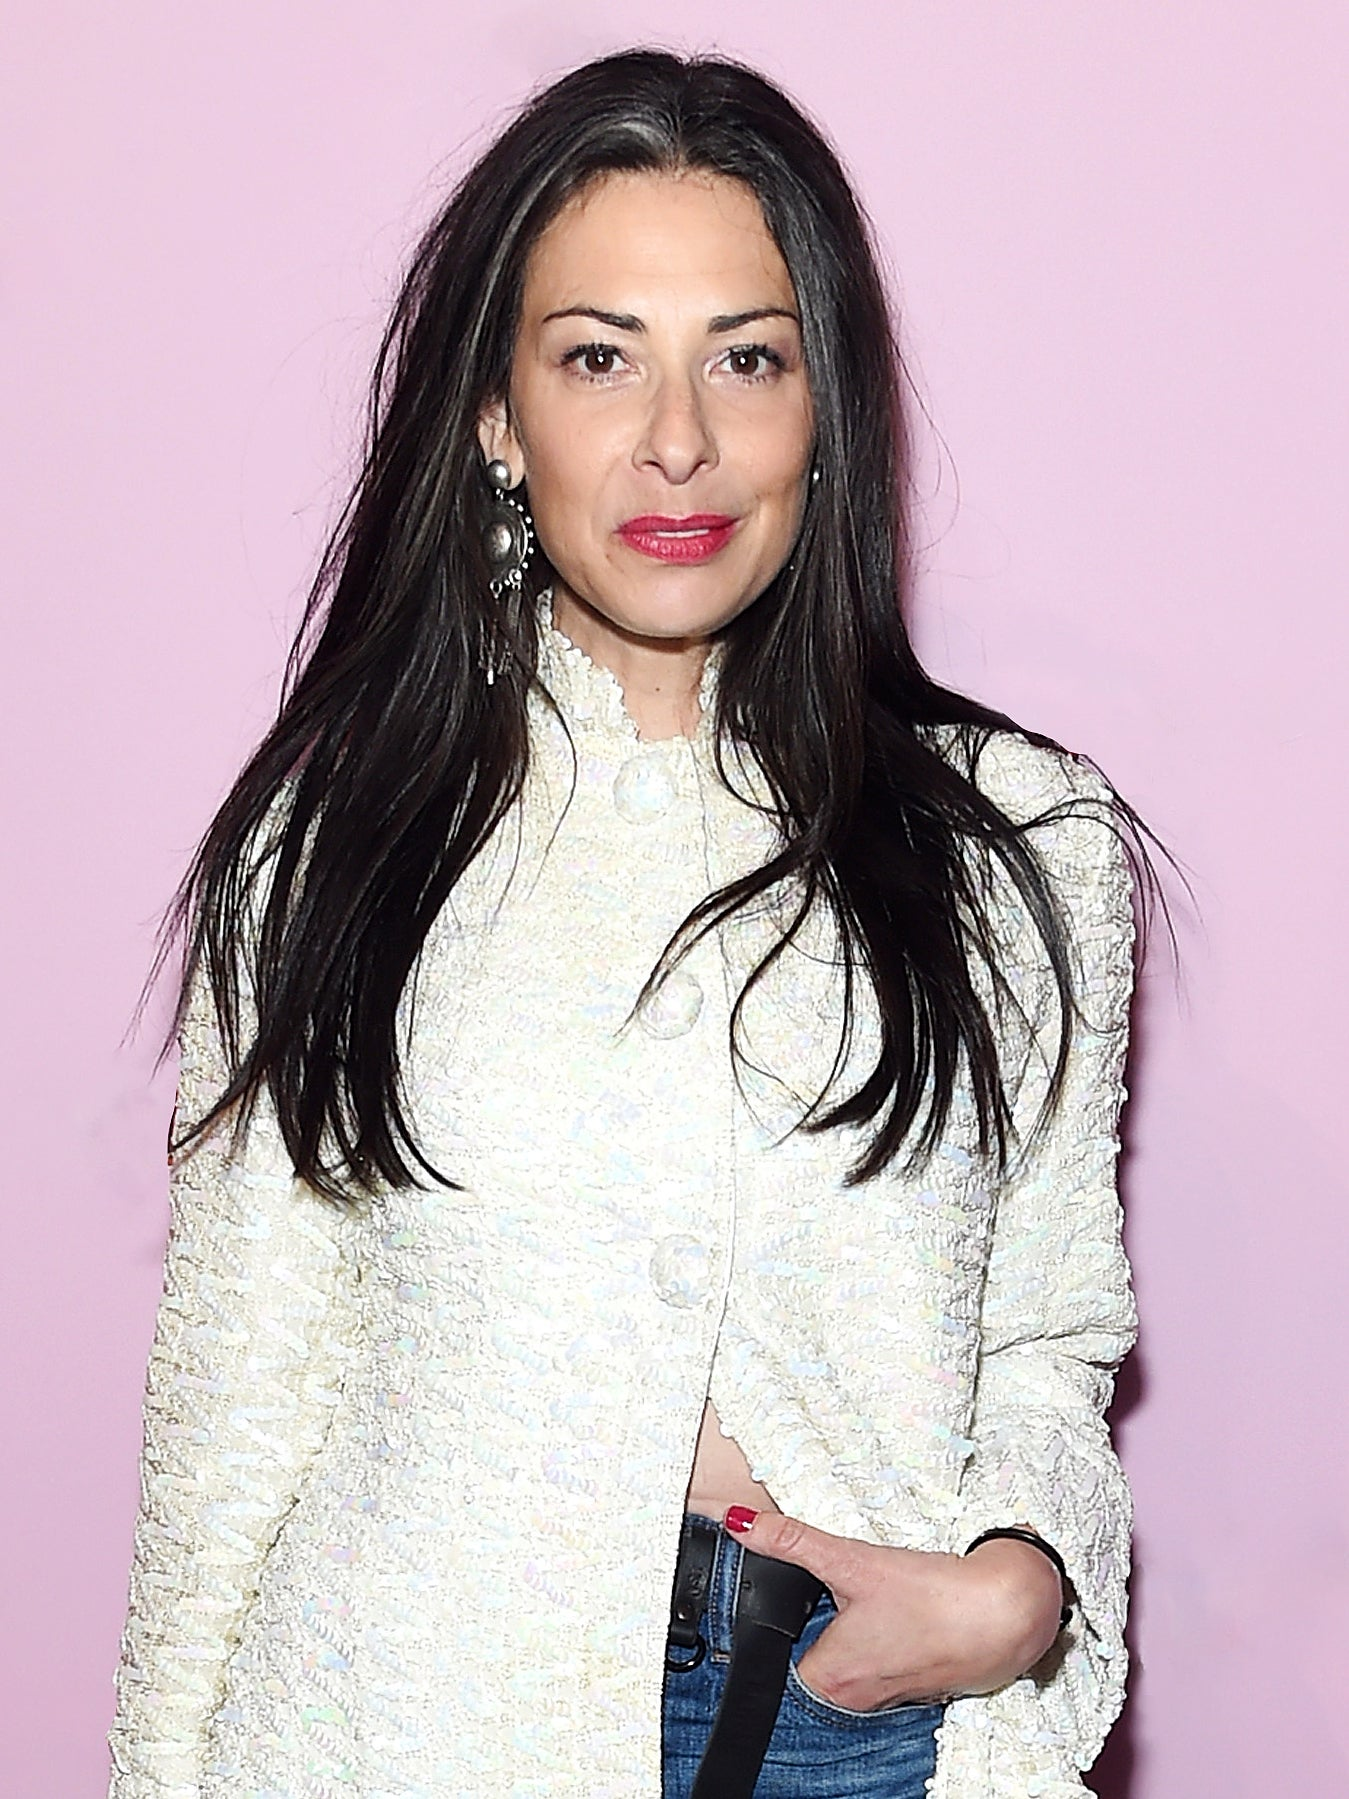 Stacy London's Small Beautiful Things Is Full of Amazing Gifts